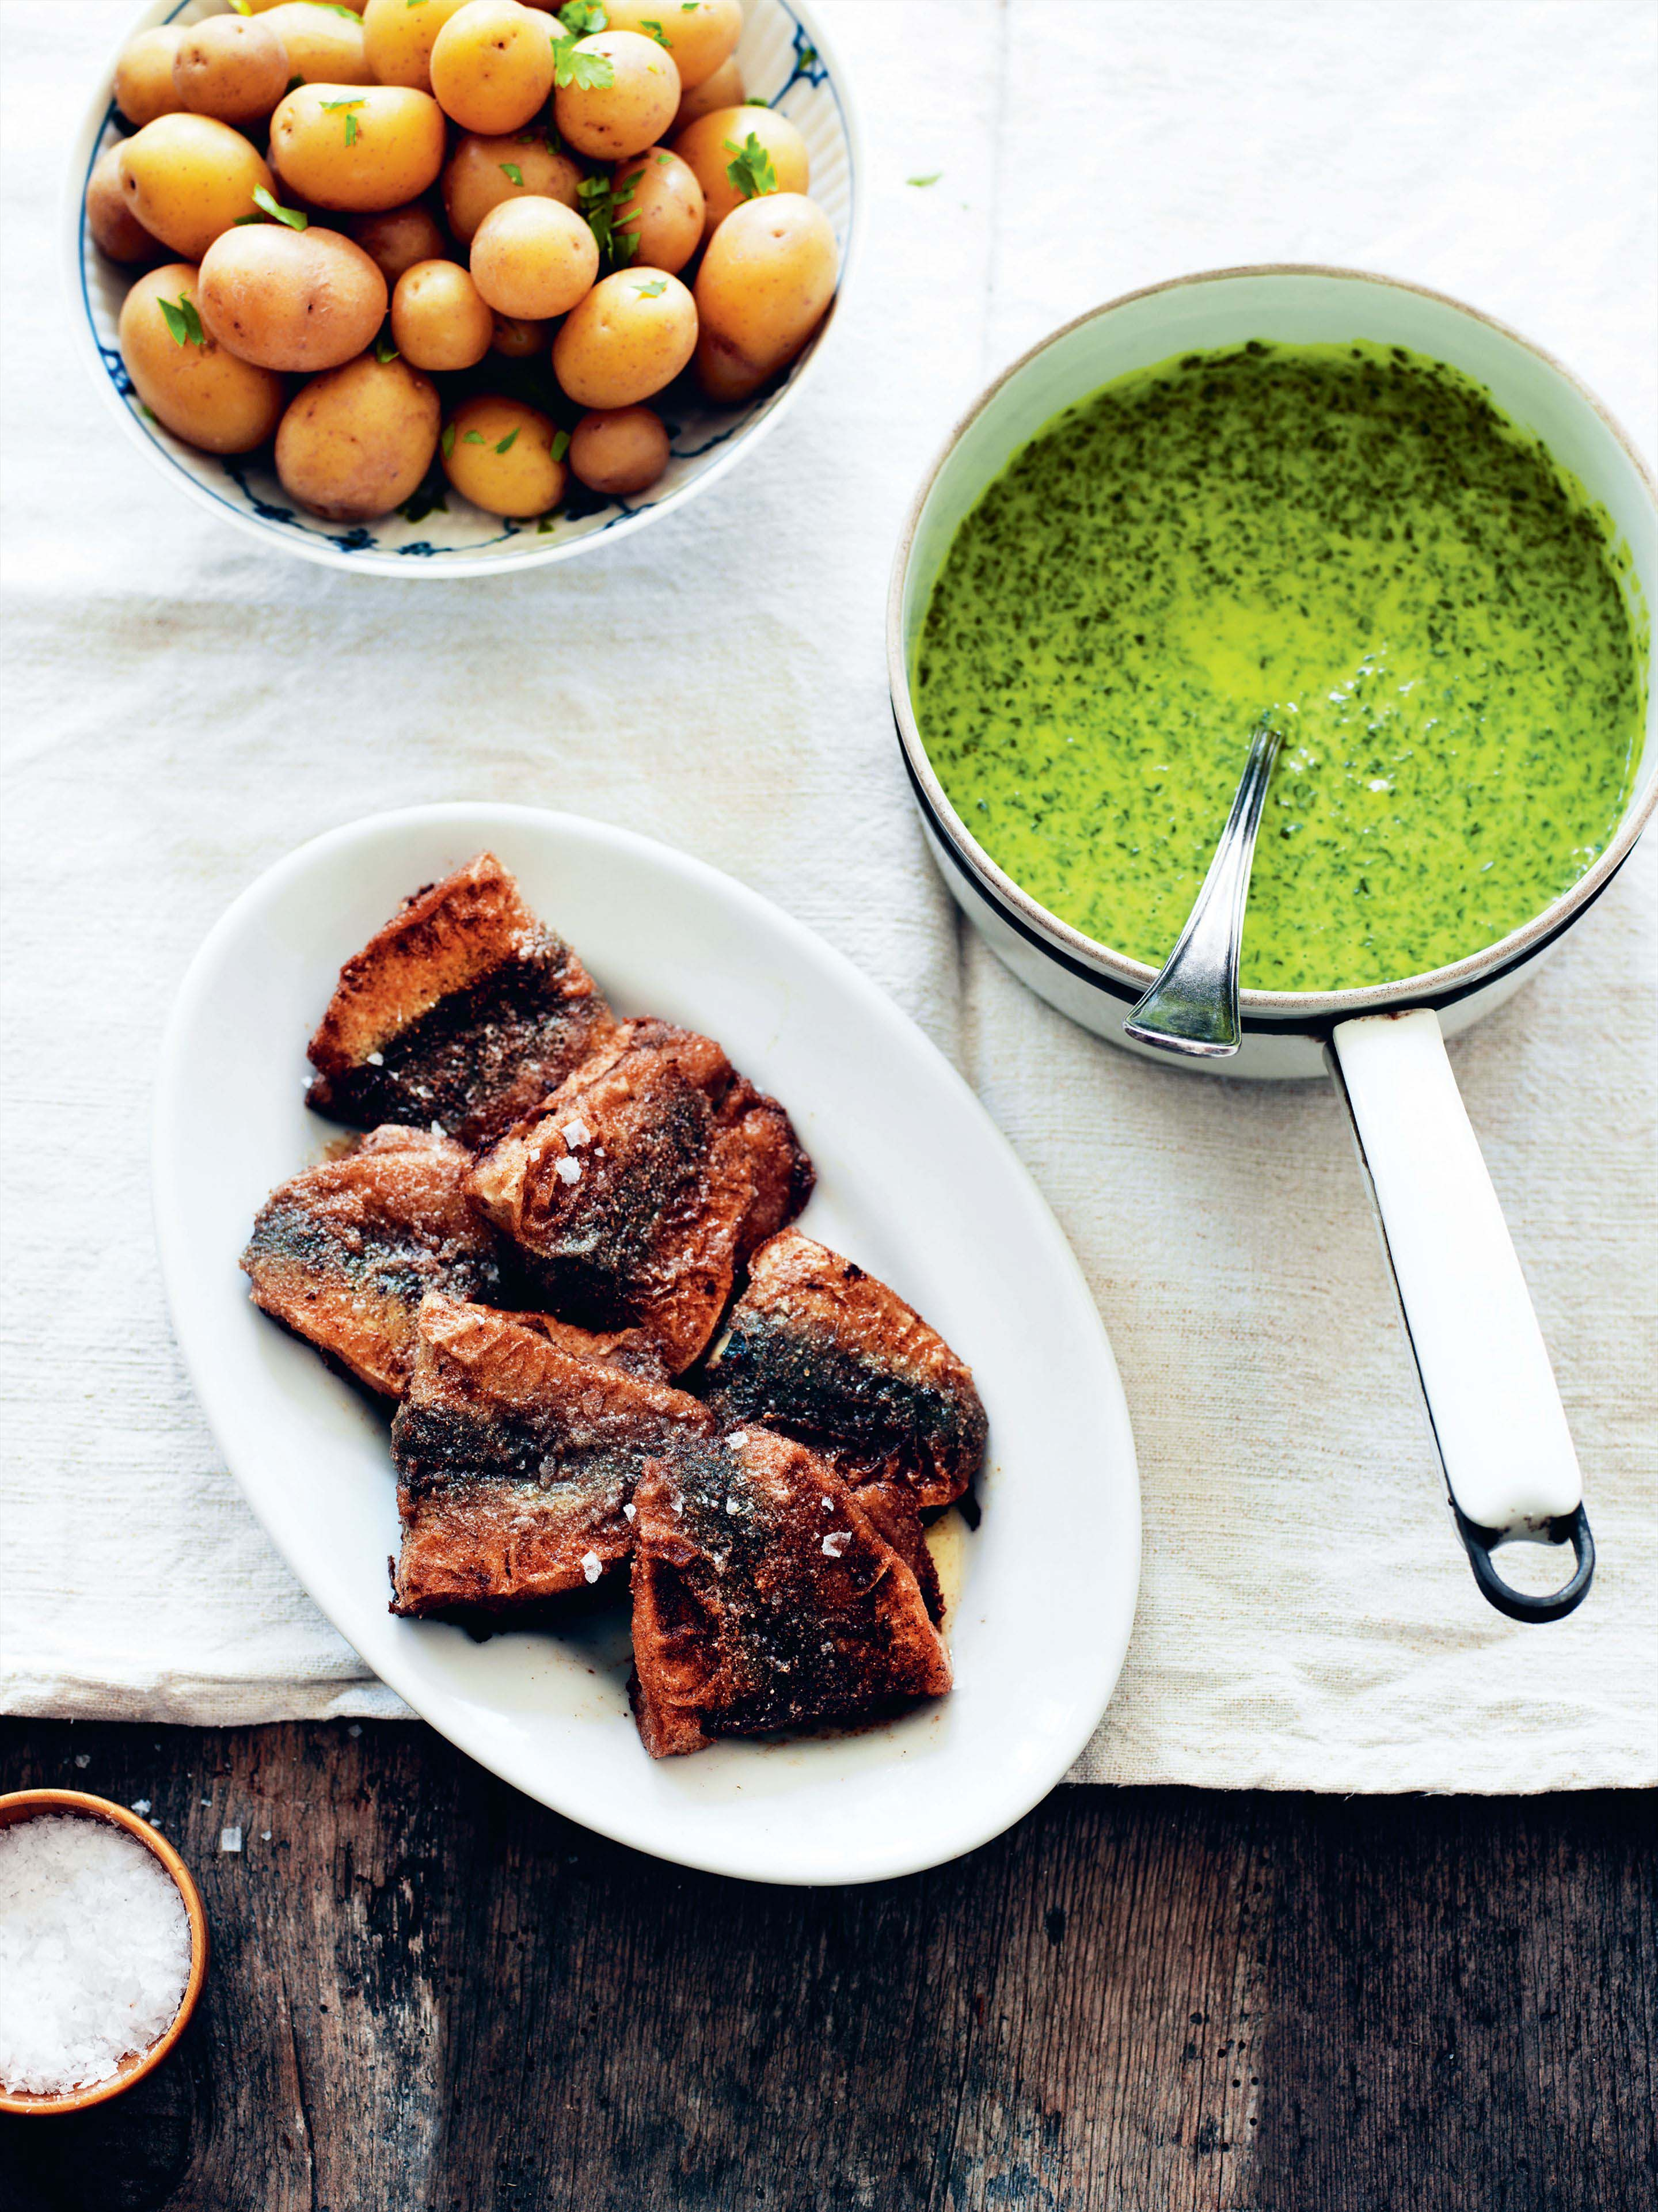 Pan-fried herrings with new potatoes and parsley sauce